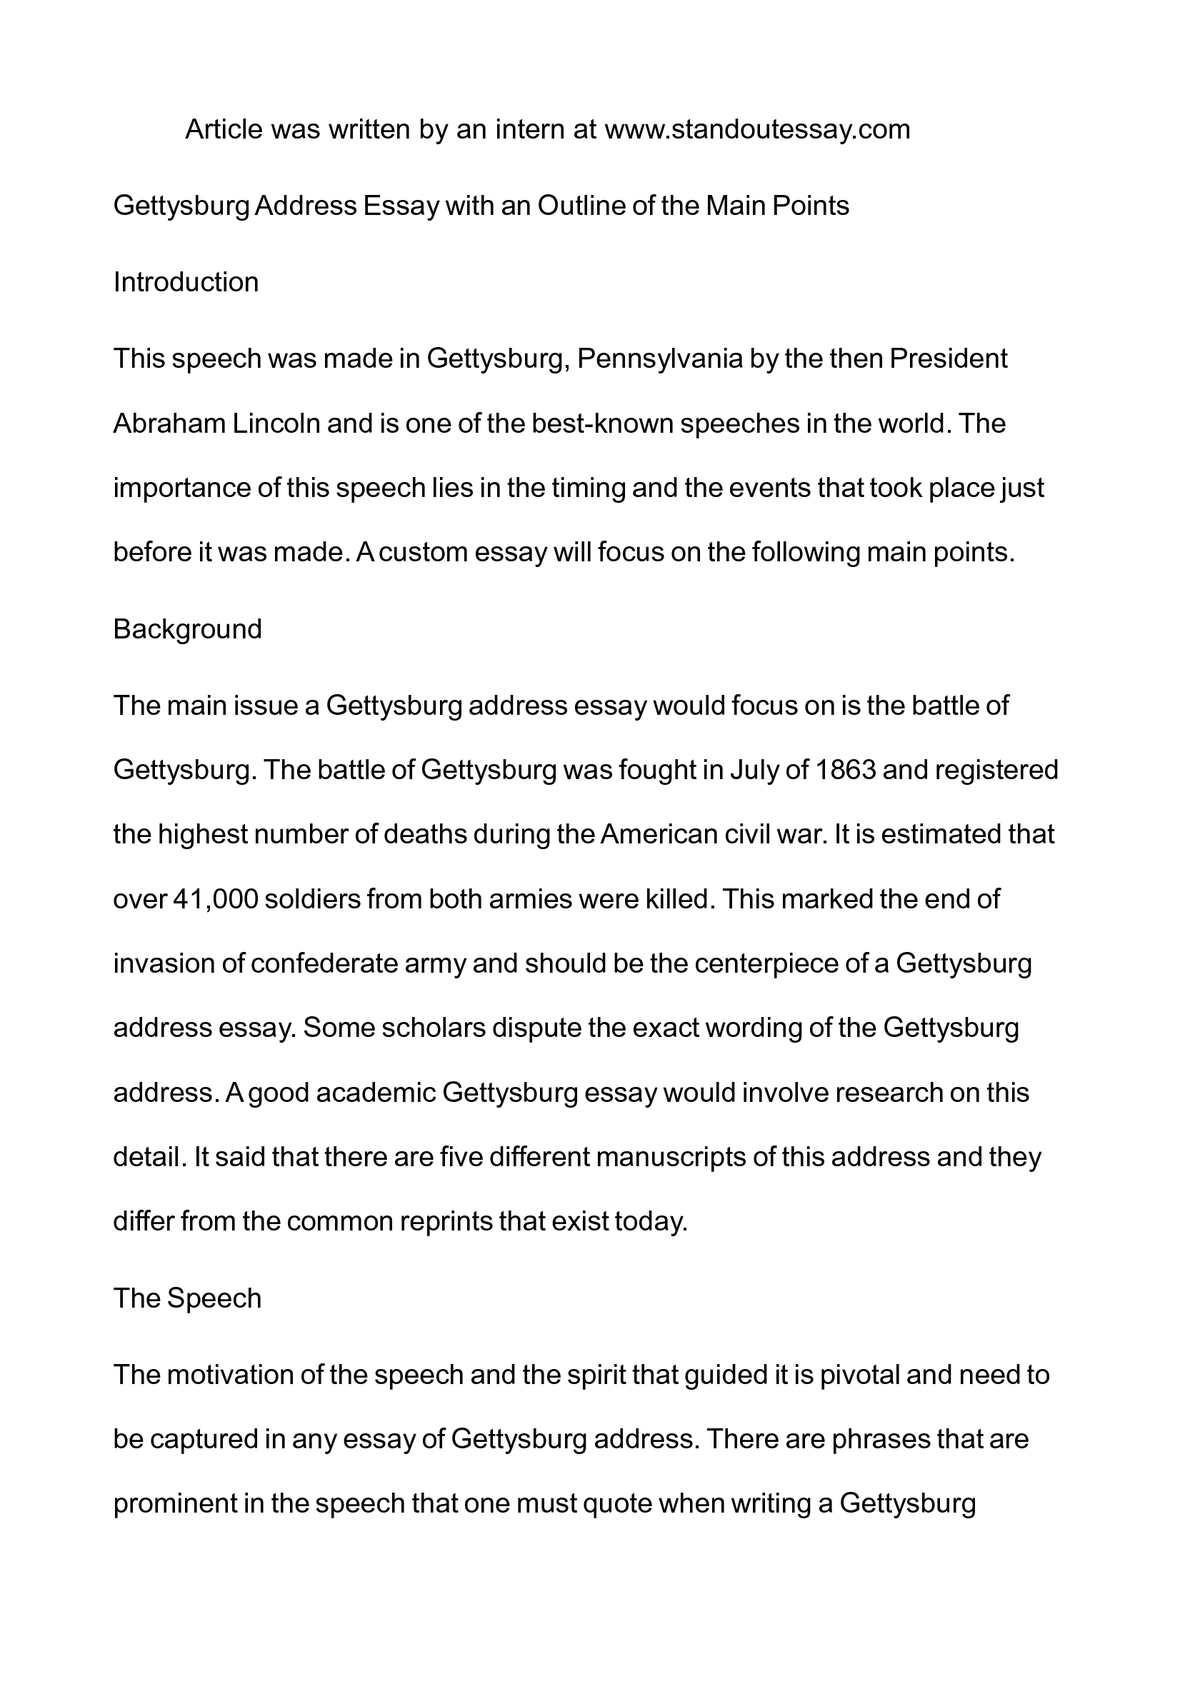 essay on the gettysburg address calam atilde copy o gettysburg address essay calamatildecopyo gettysburg address essay an outline of the main calamatildecopyo gettysburg